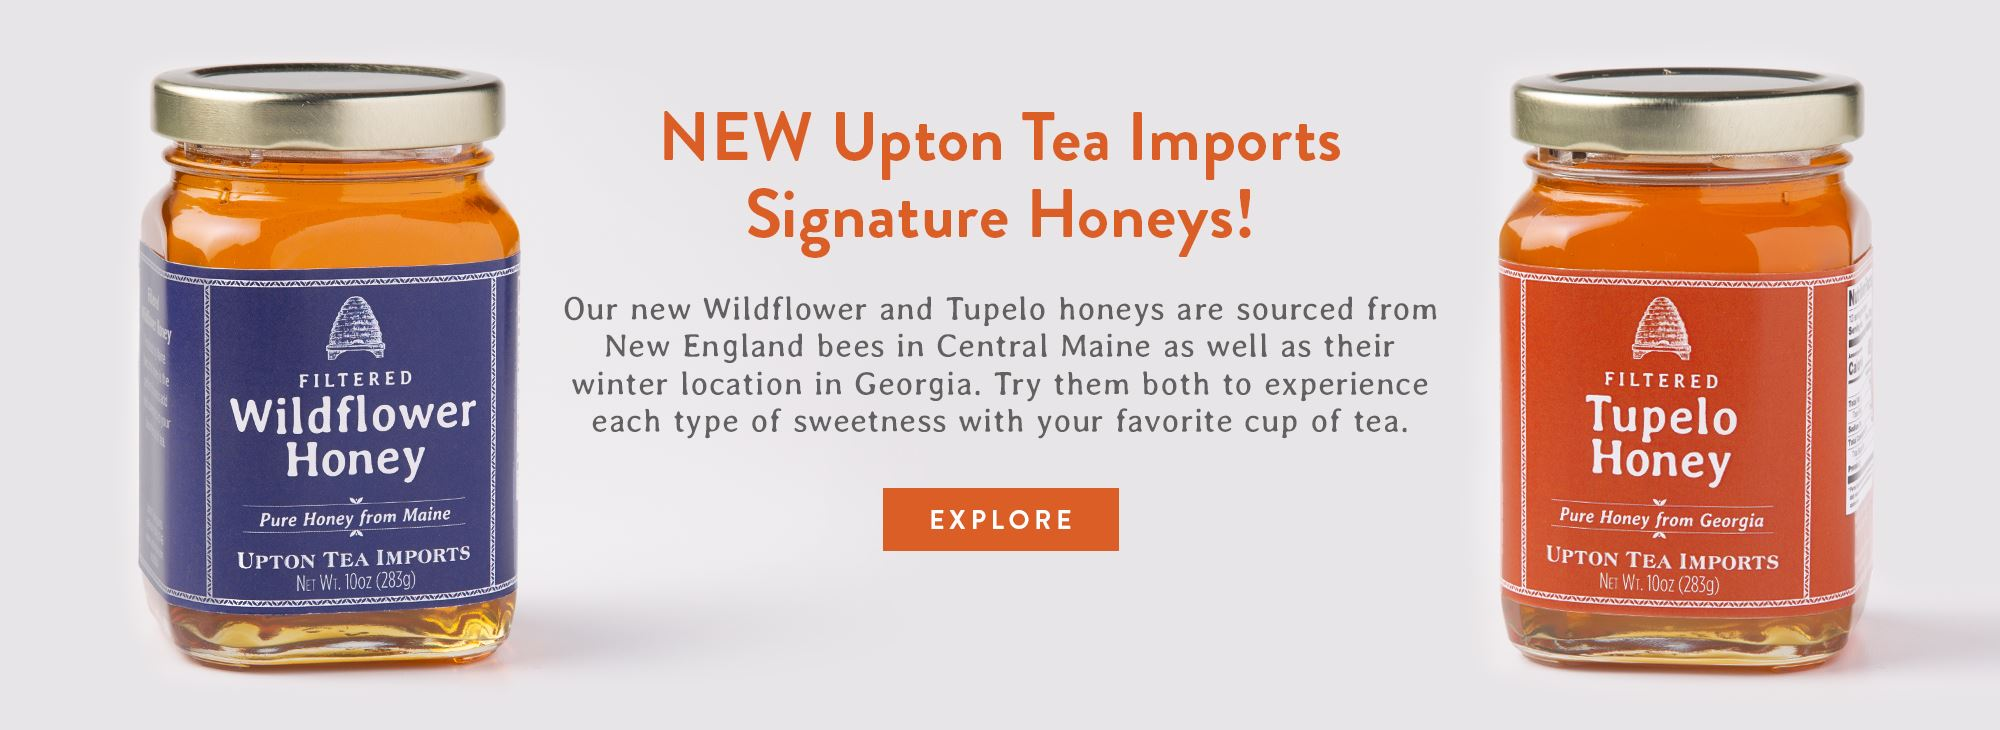 NEW Upton Tea Imports Signature Honeys